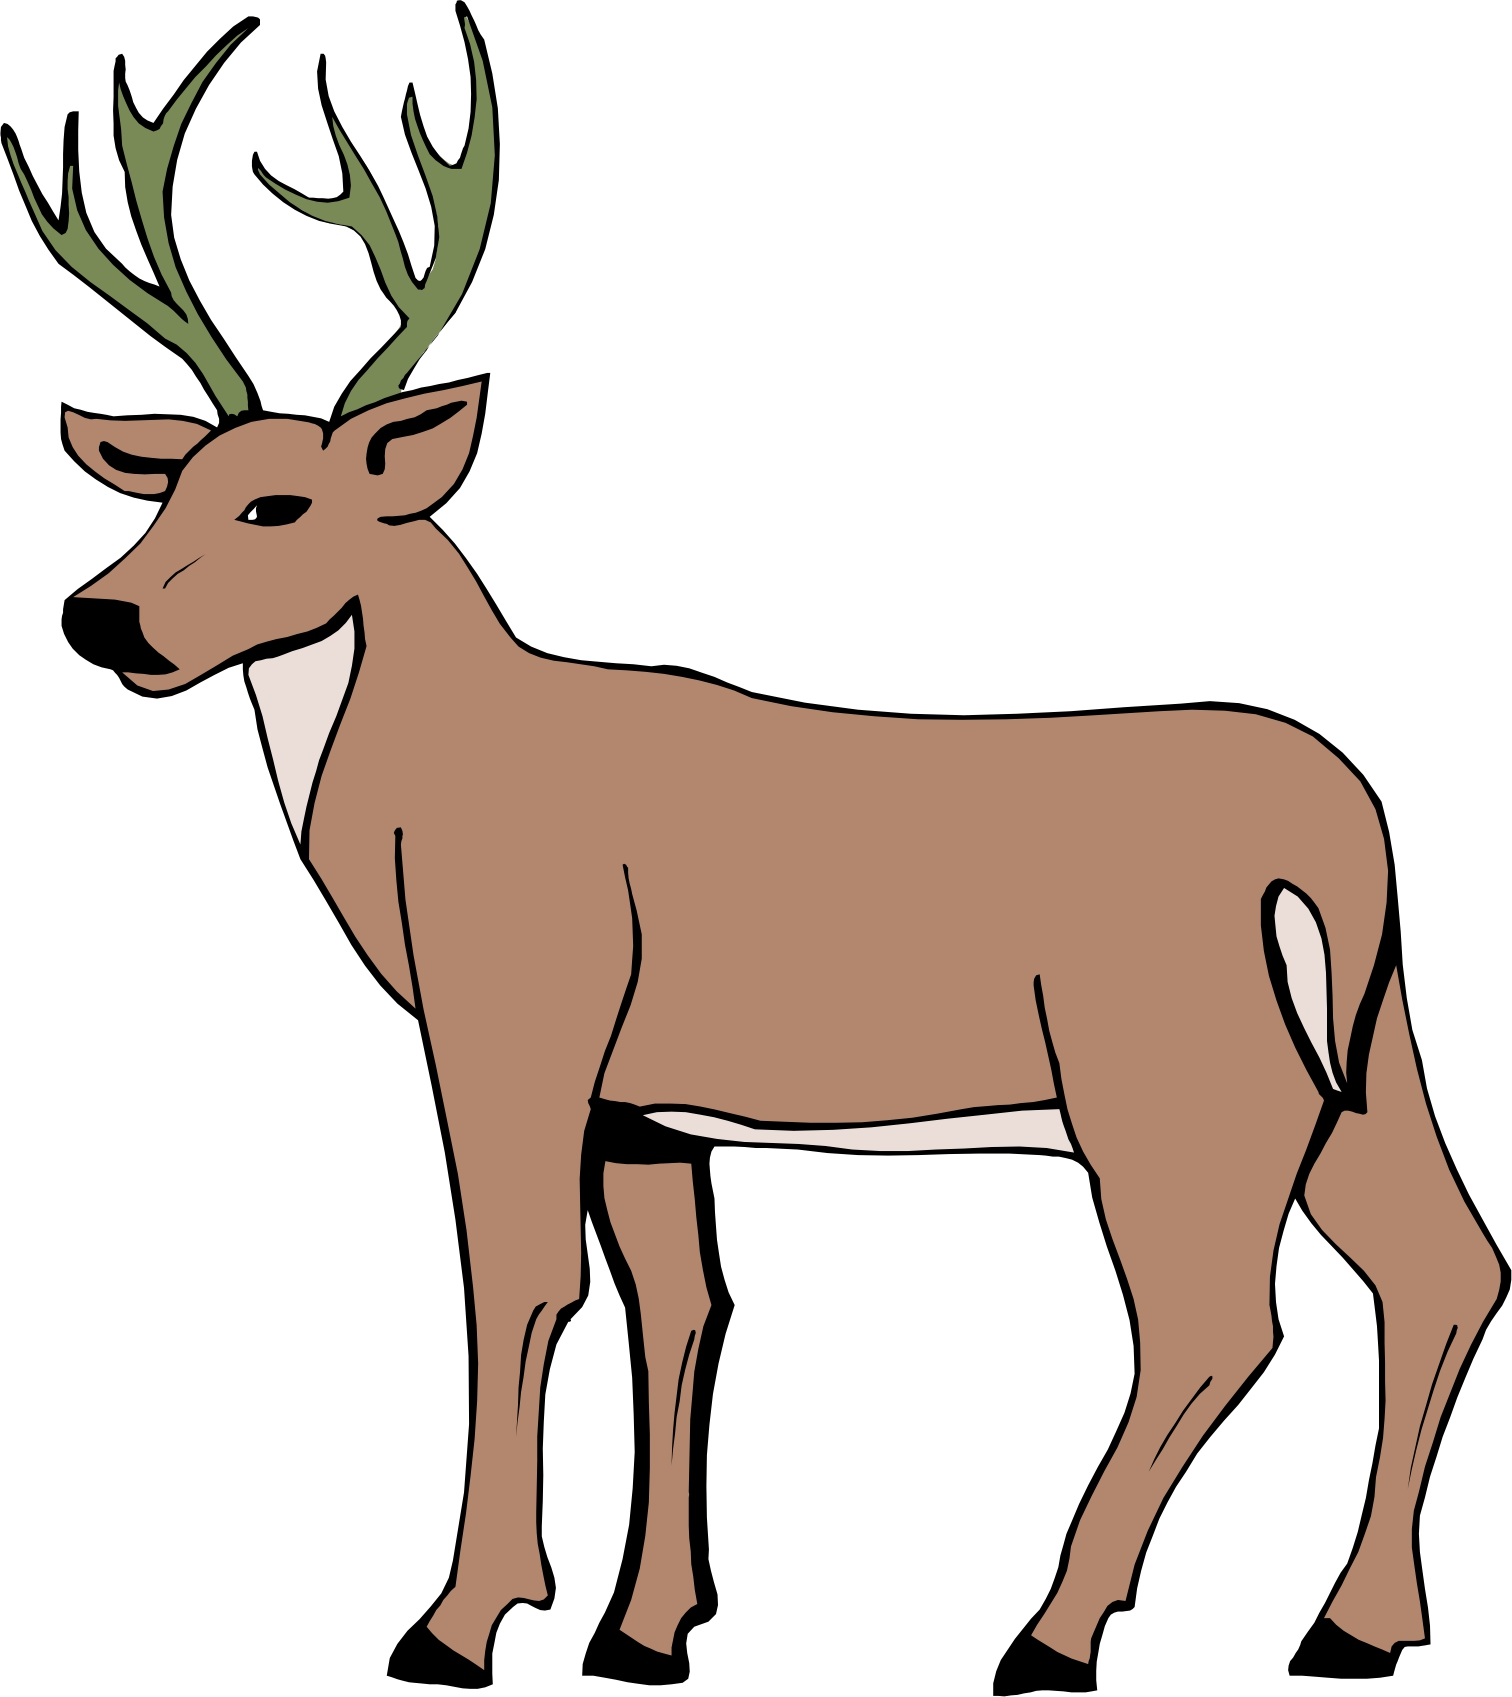 Cartoon Deer Drawing at GetDrawings.com | Free for personal use ...